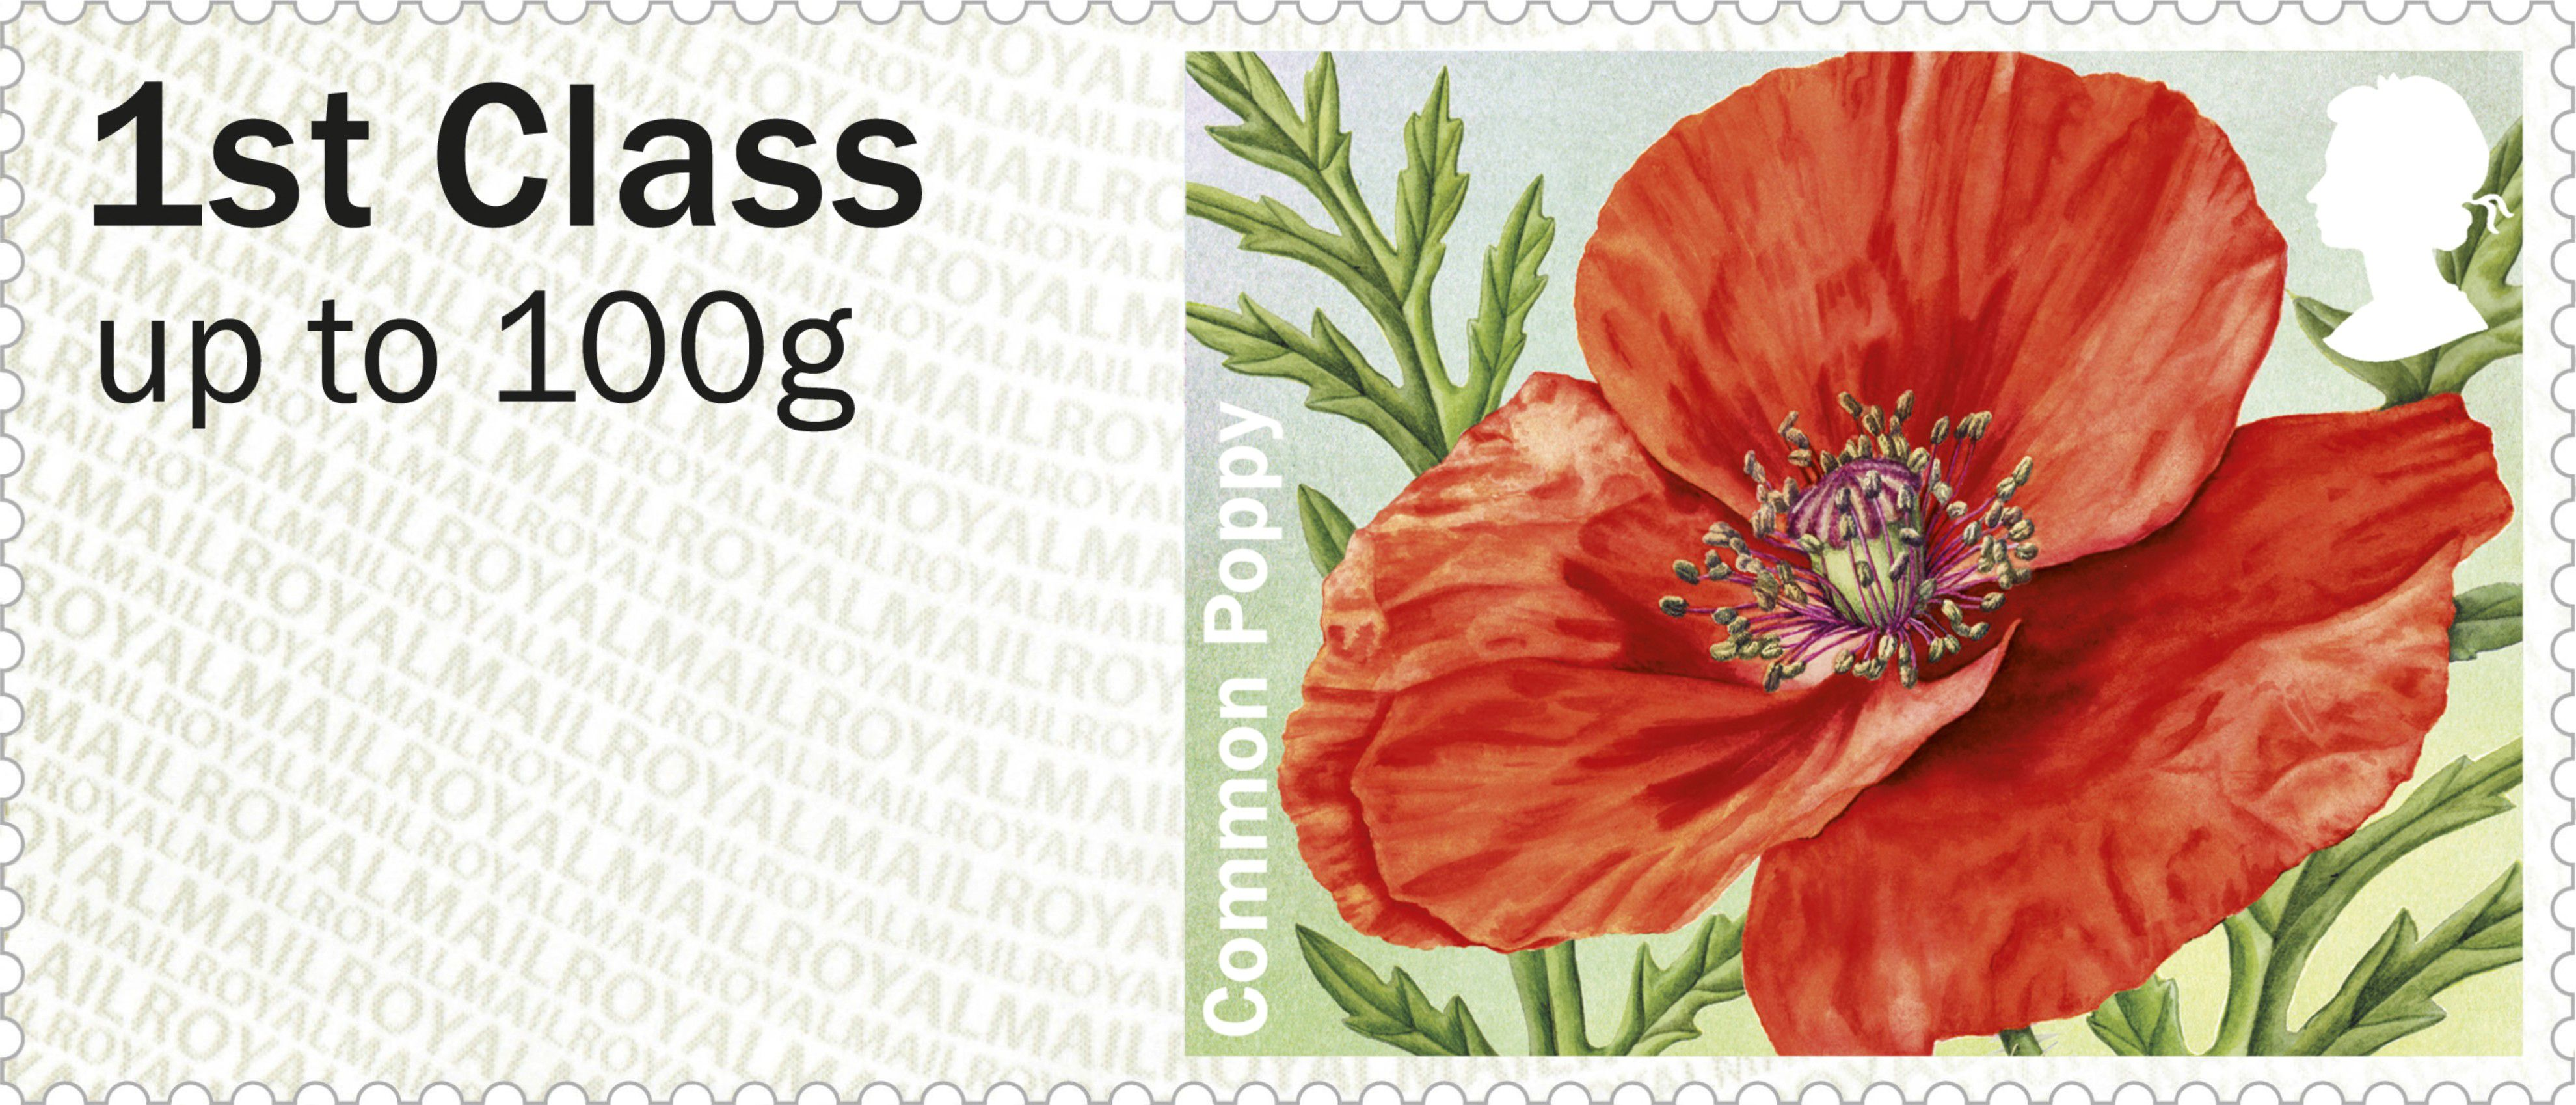 Post Go Symbolic Flowers British Flora 2 1st Stamp 2014